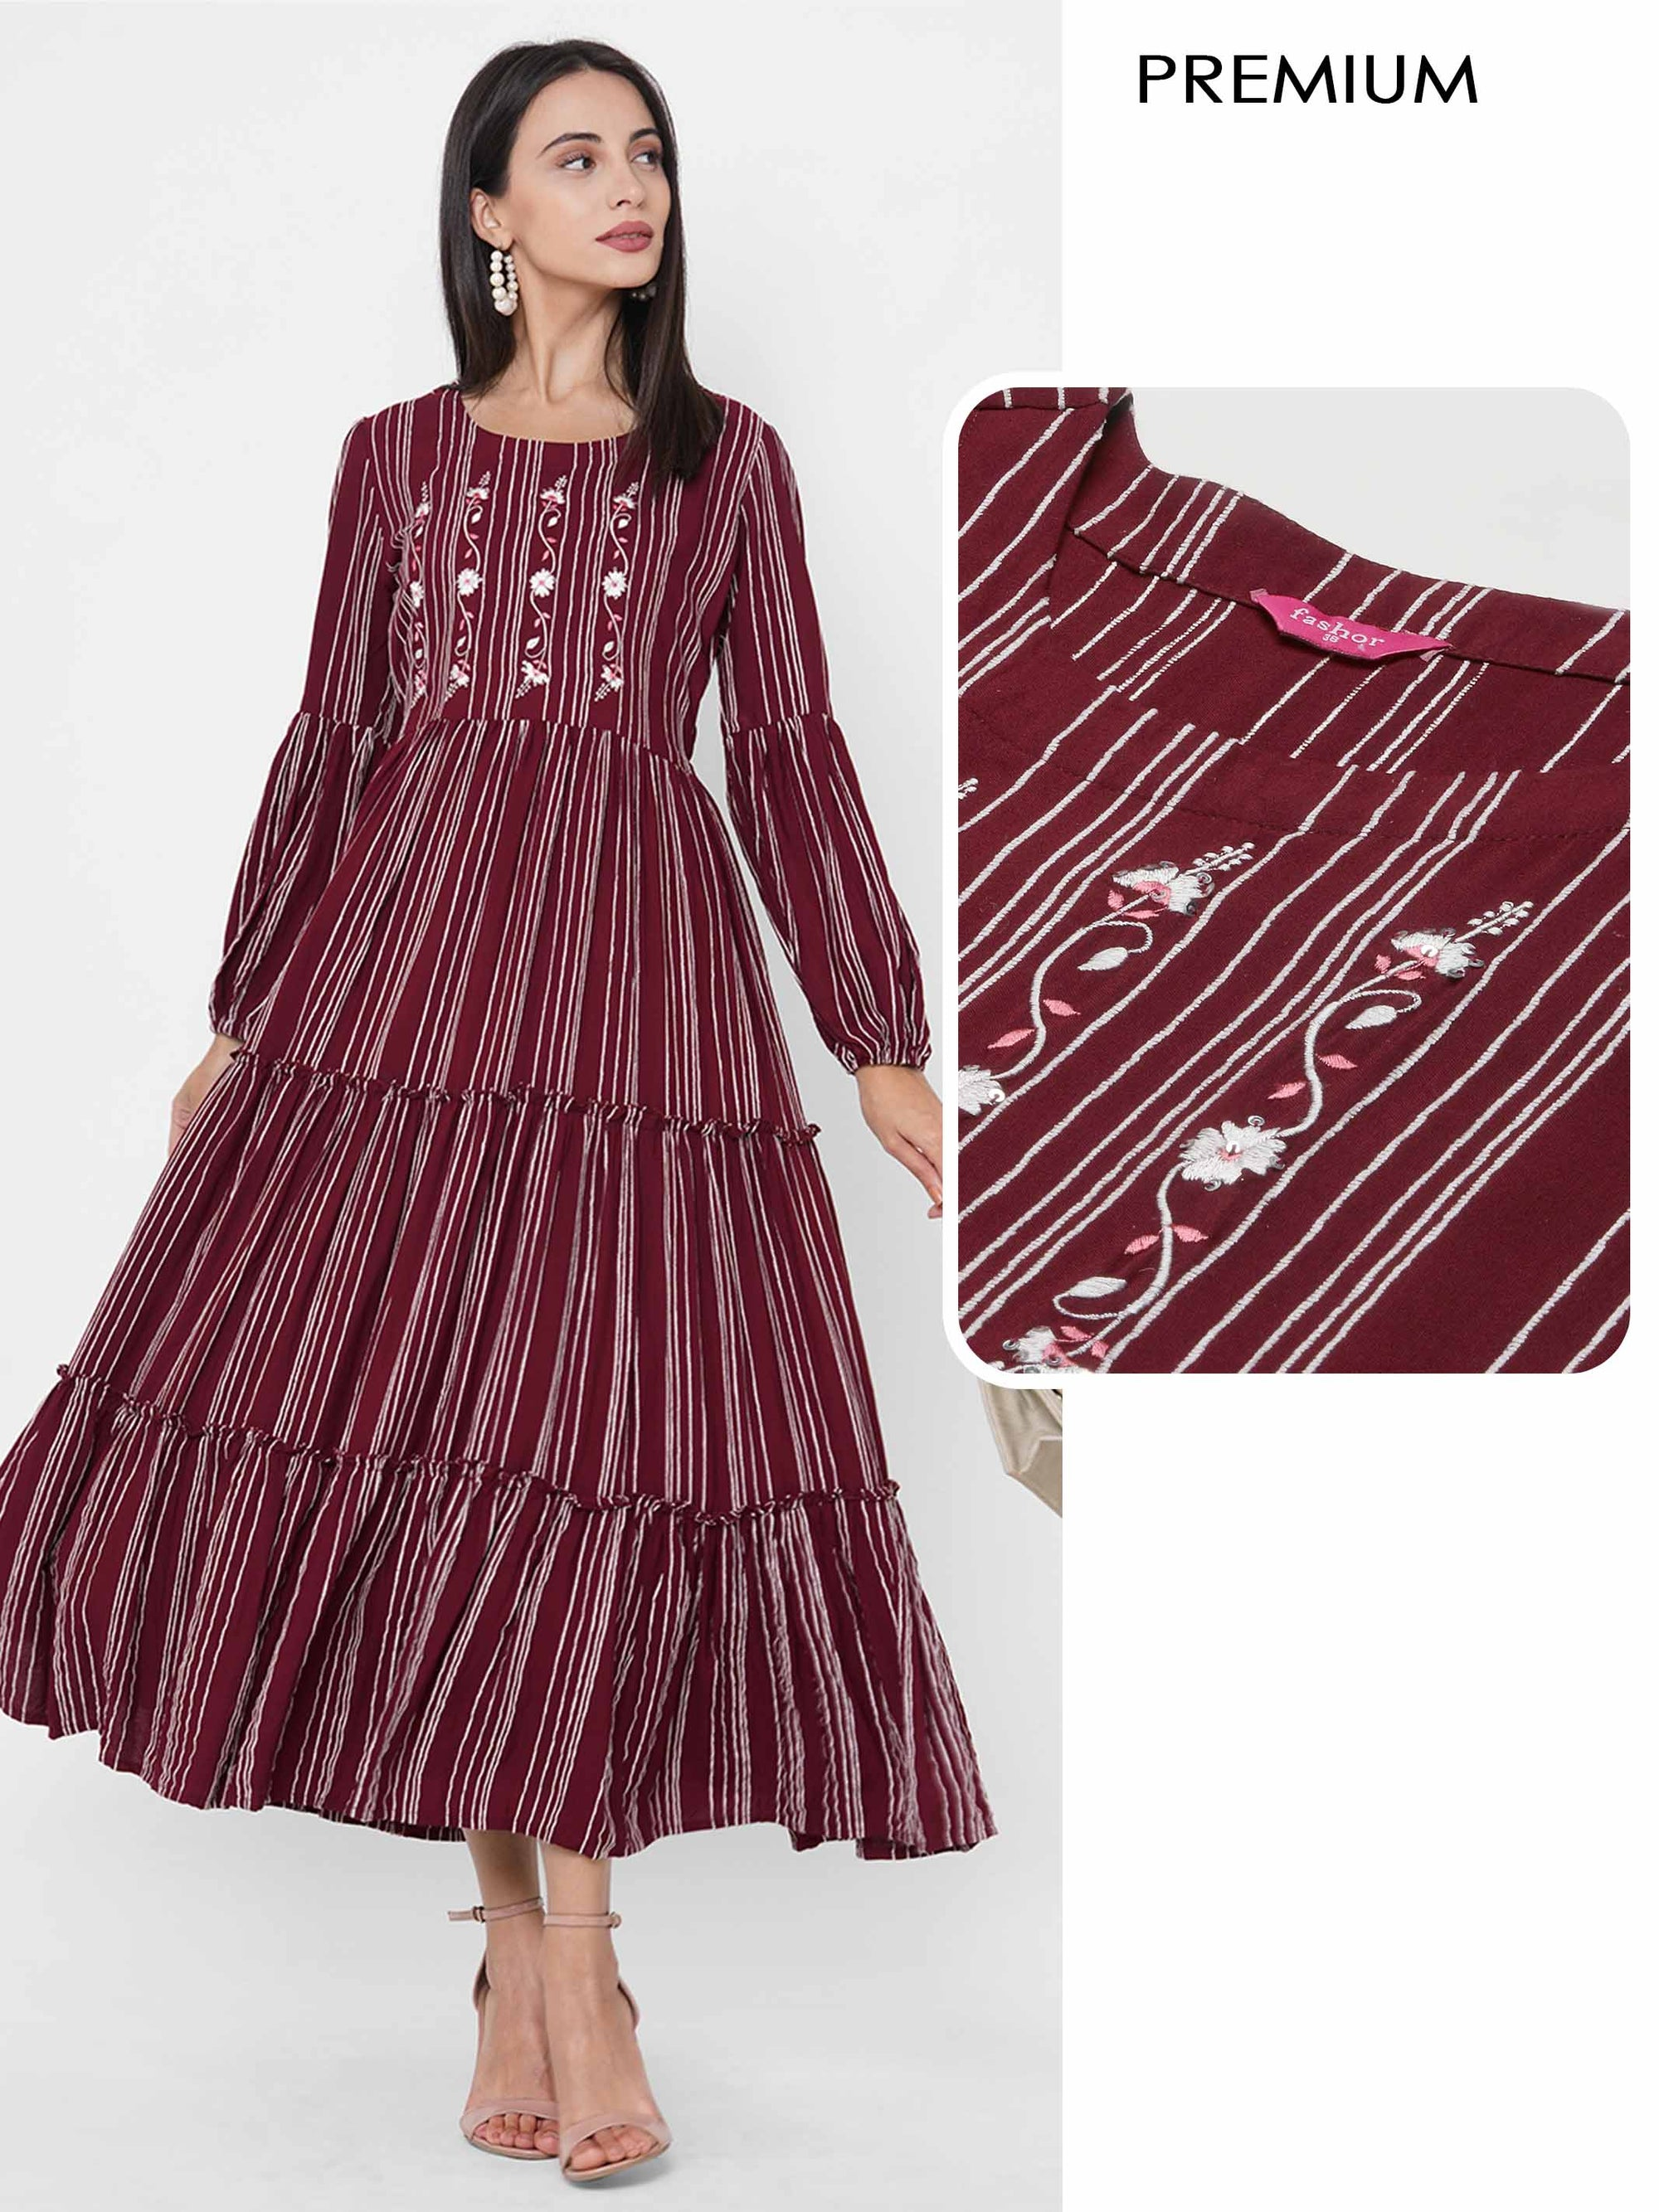 Floral Embroidered & Woven Striped Tiered Maxi Dress - Maroon